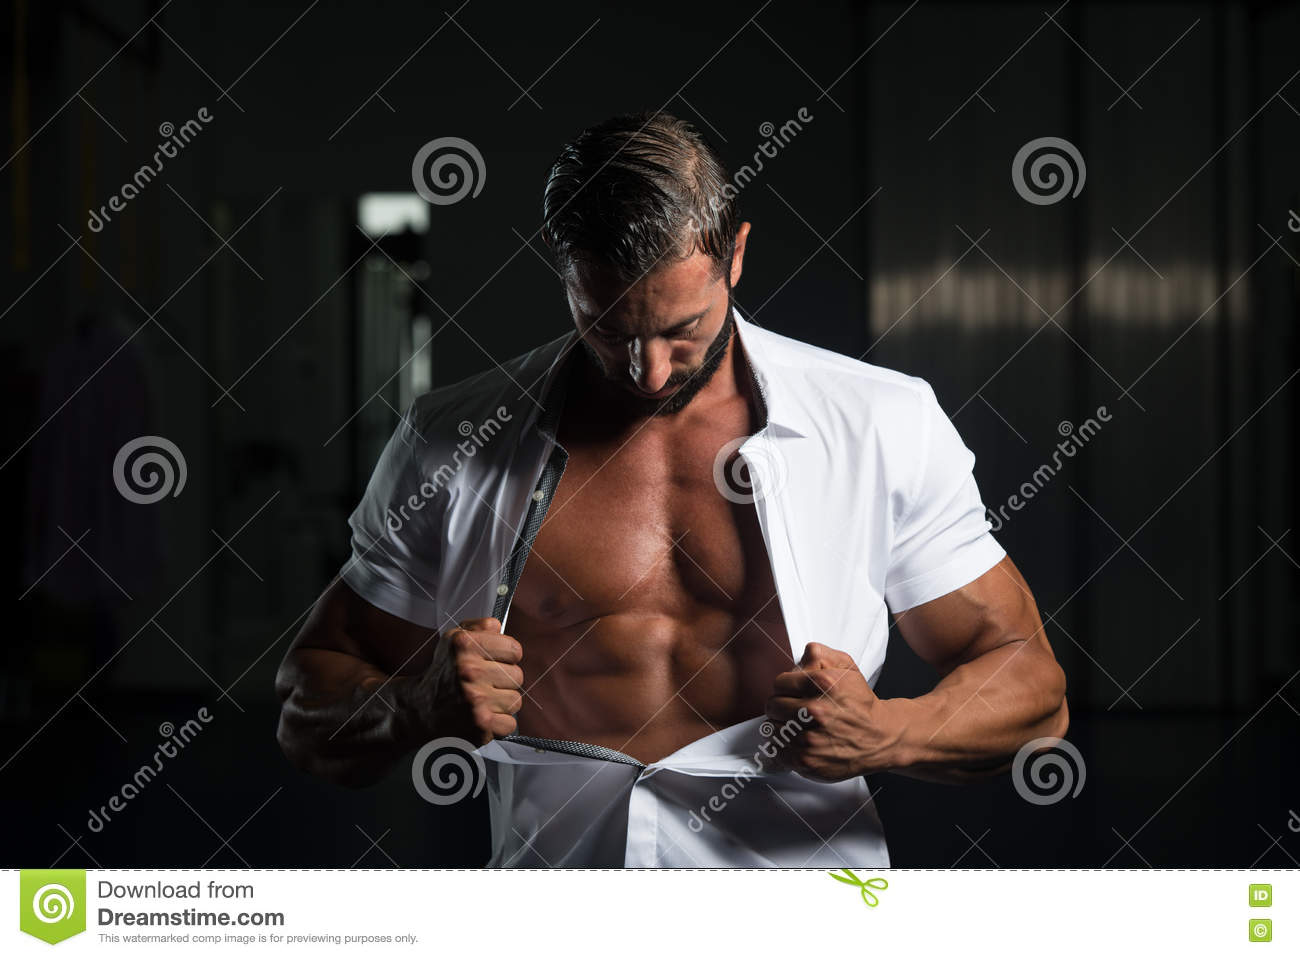 Handsome Muscular Men Stock Photo   Getty Images